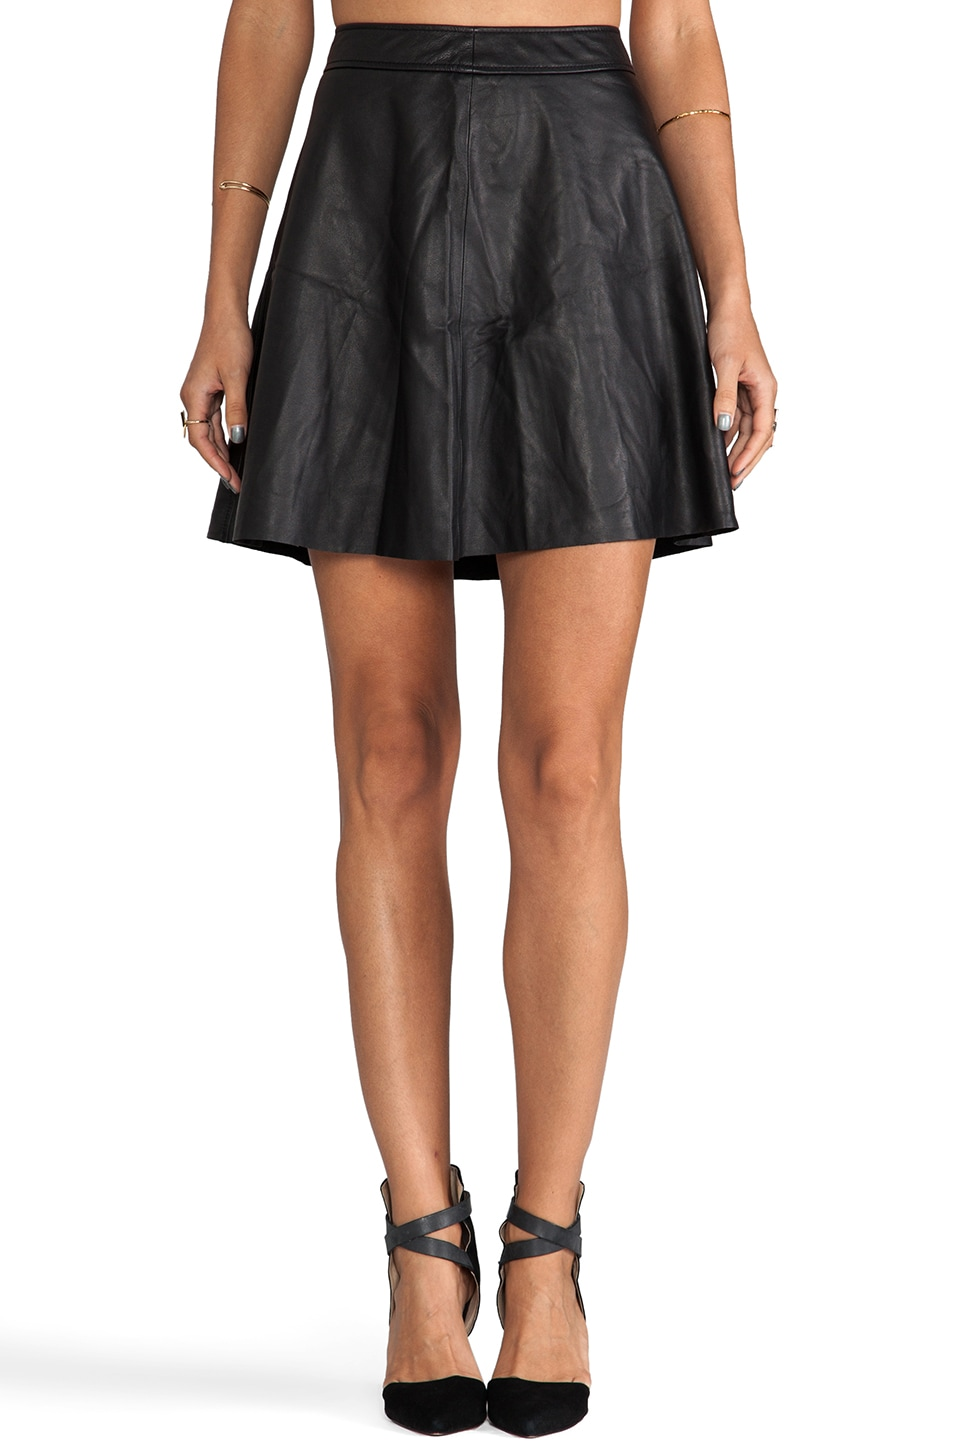 Trina Turk Soft Lamb Leather Lannie Skirt in Black